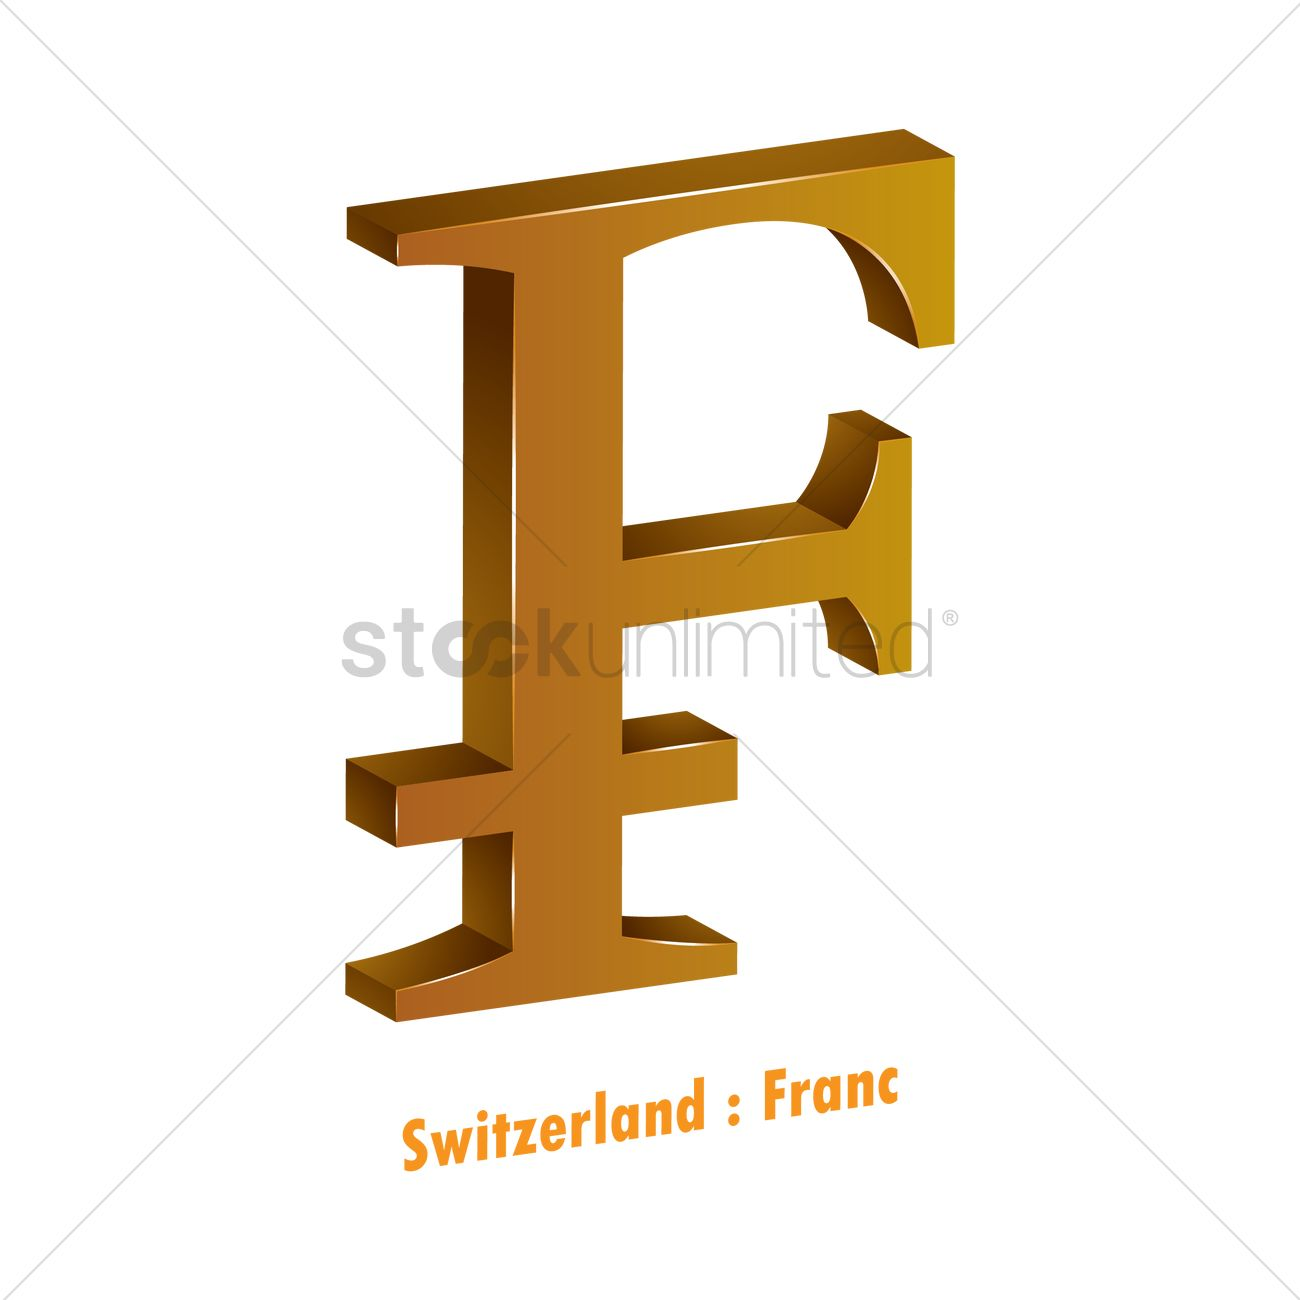 Franc Currency Symbol Vector Image 1821574 Stockunlimited